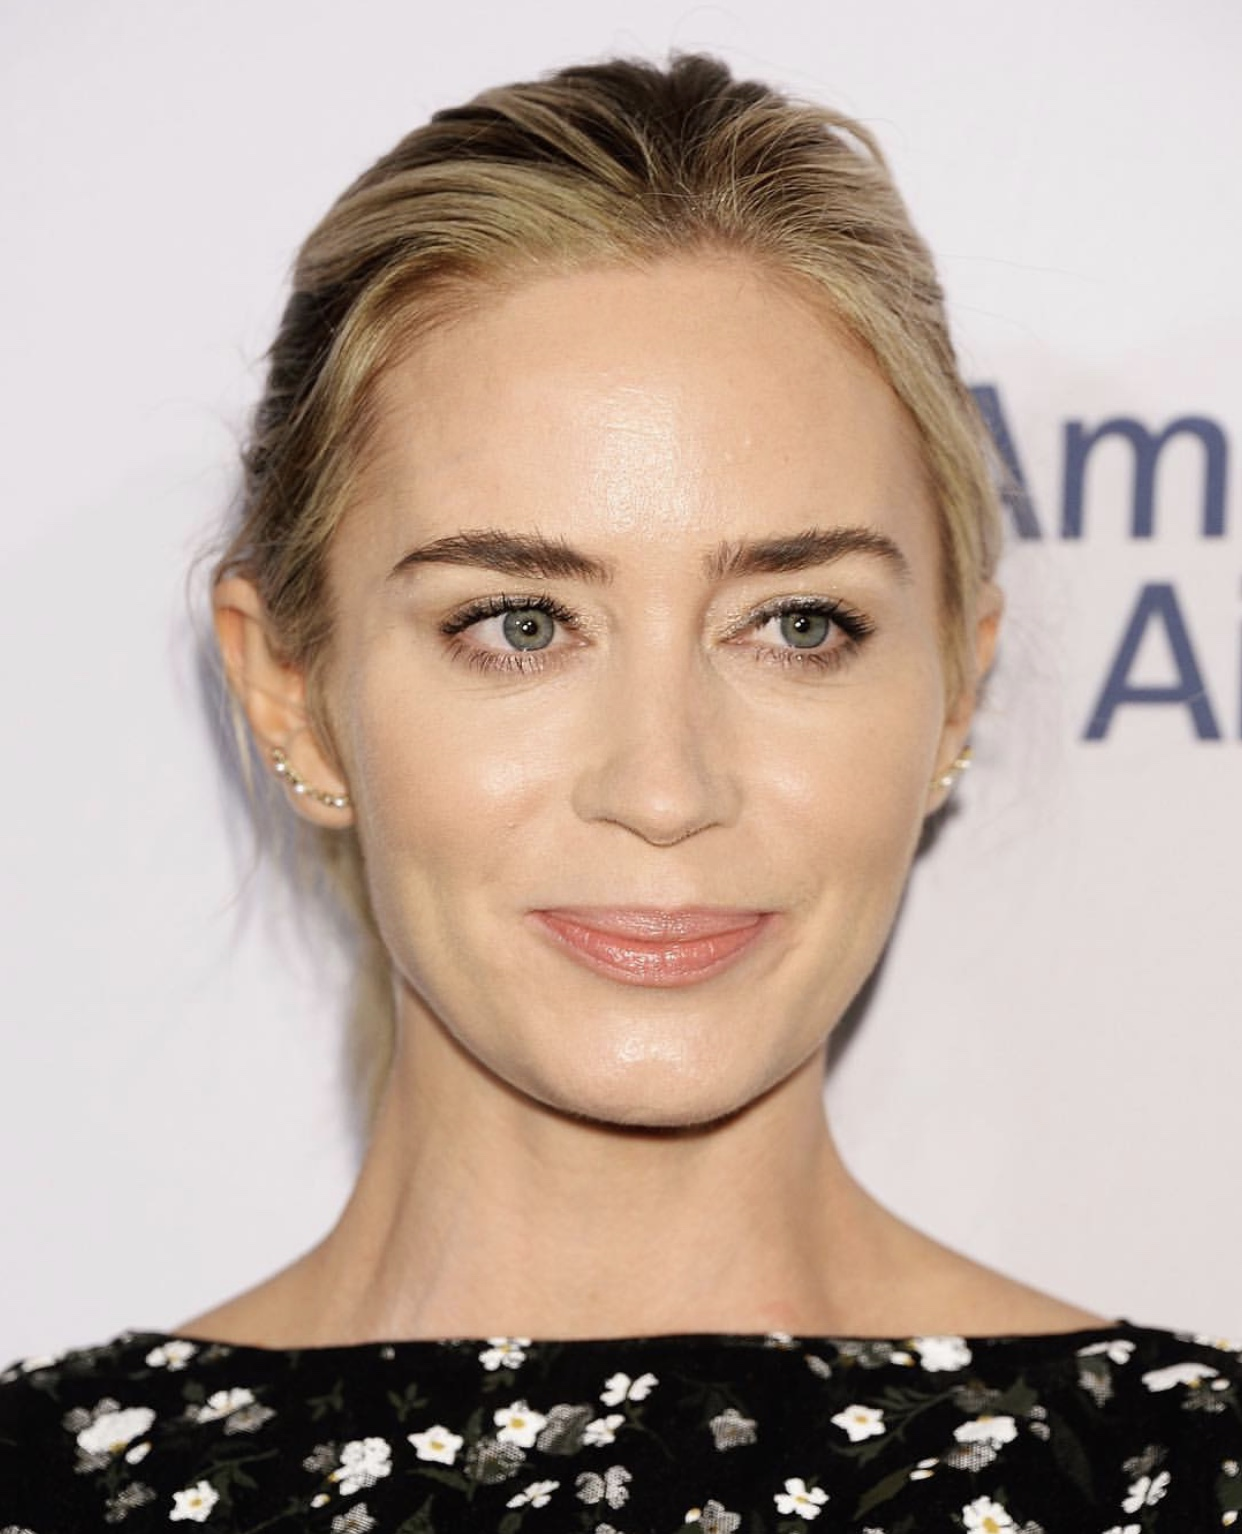 Emily Blunt at the BAFTA Tea Party